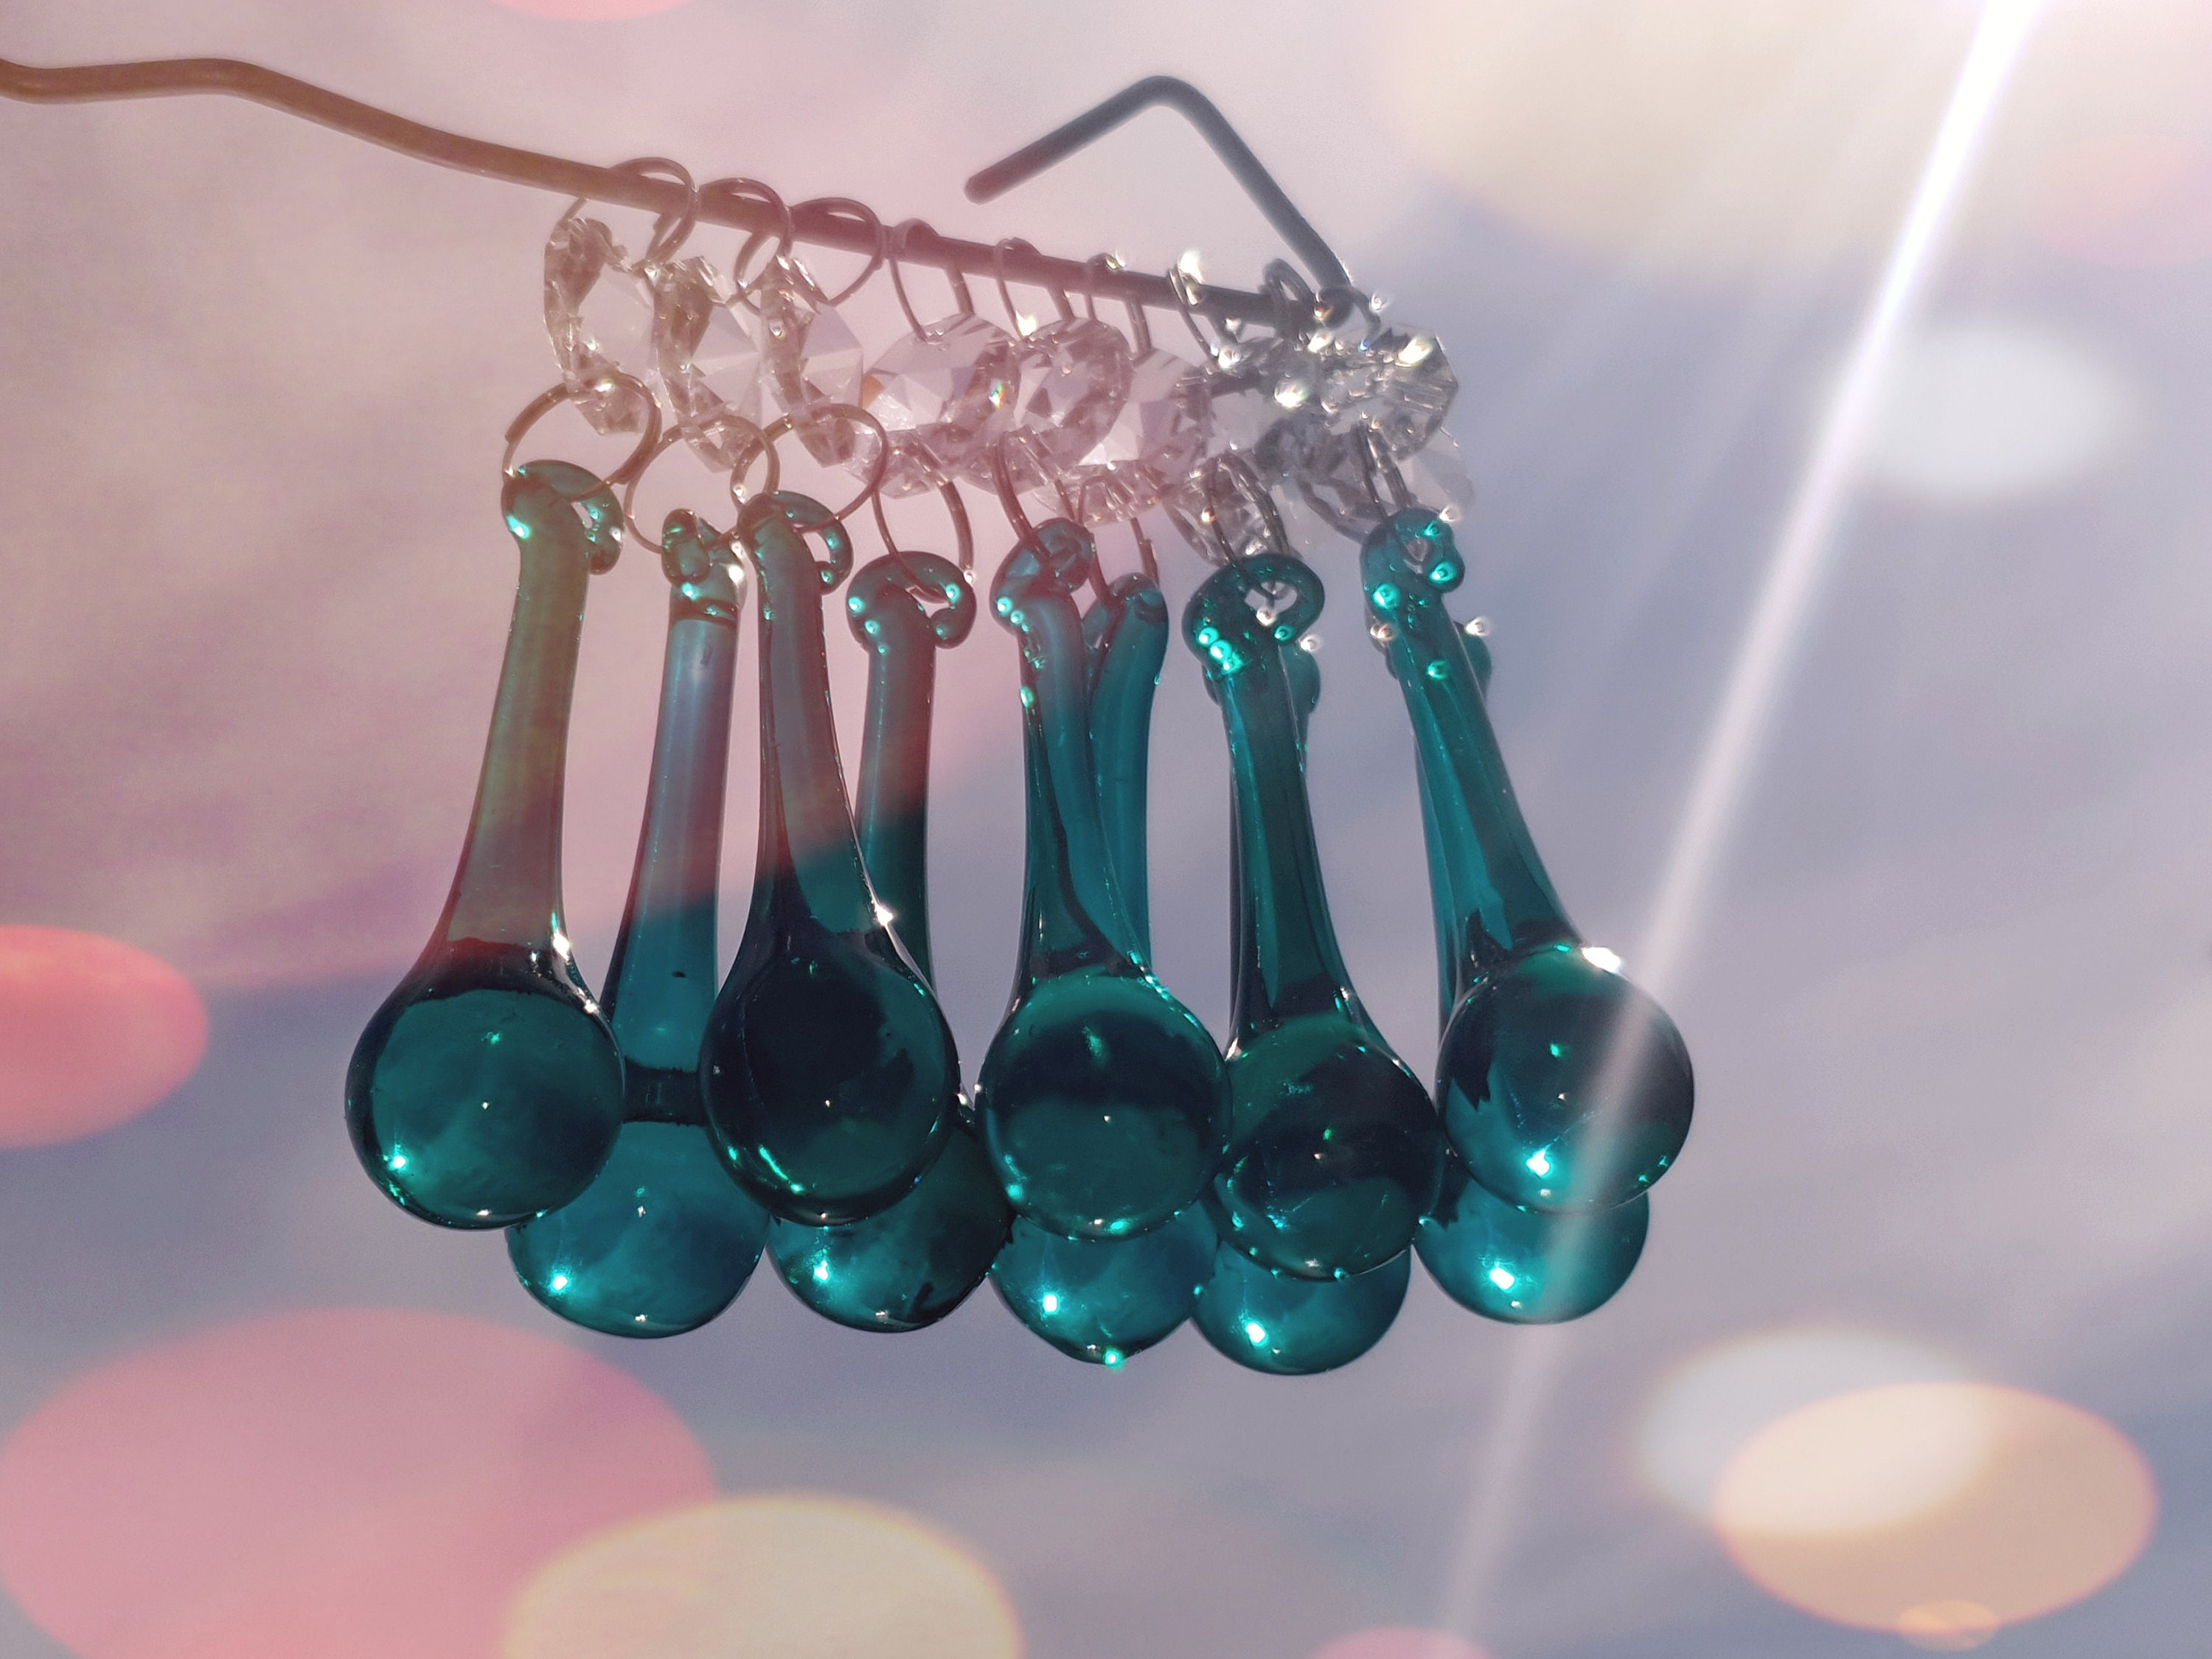 5 CHANDELIER GLASS CRYSTALS DROPS ORB BEADS DROPLETS LIGHT LAMP PARTS PRISM DECO